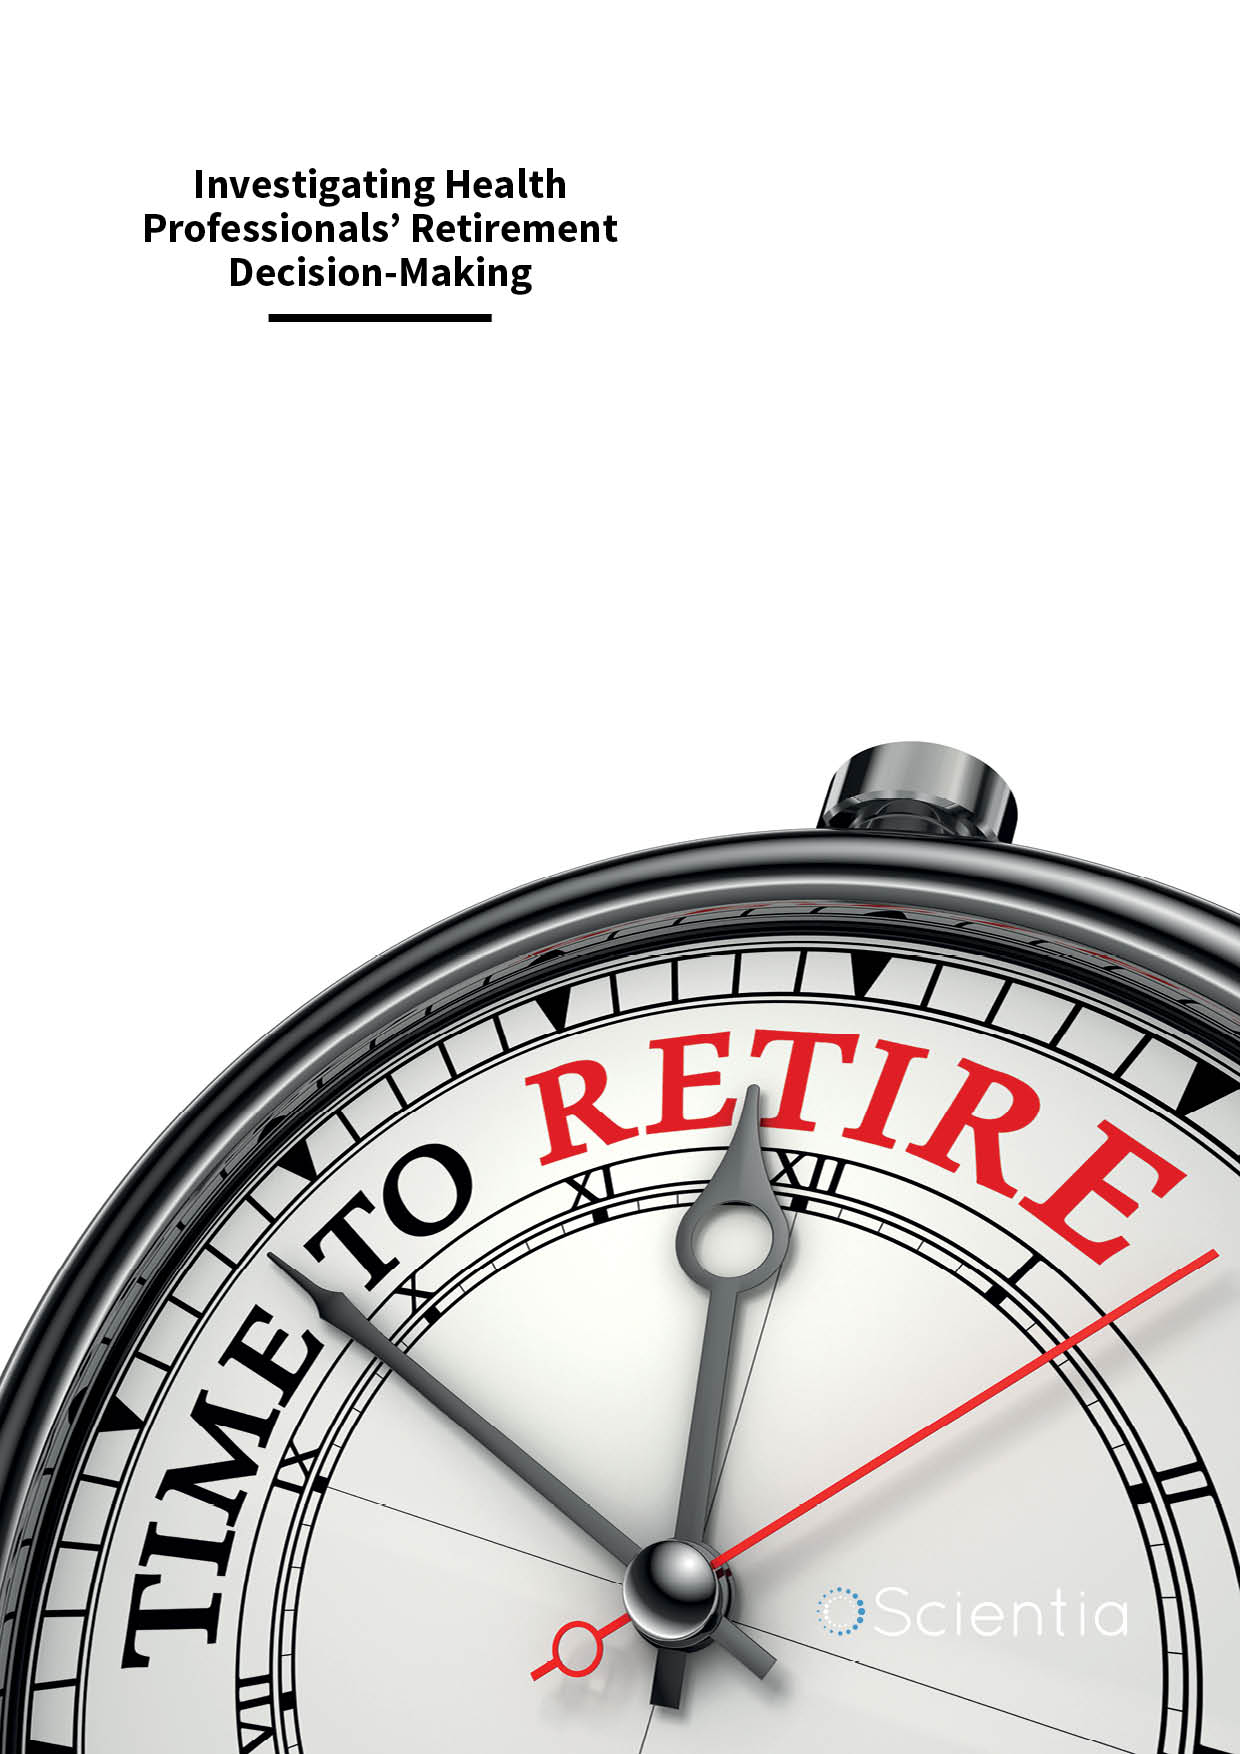 Dr Sarah Hewko – Investigating Health Professionals' Retirement Decision-Making